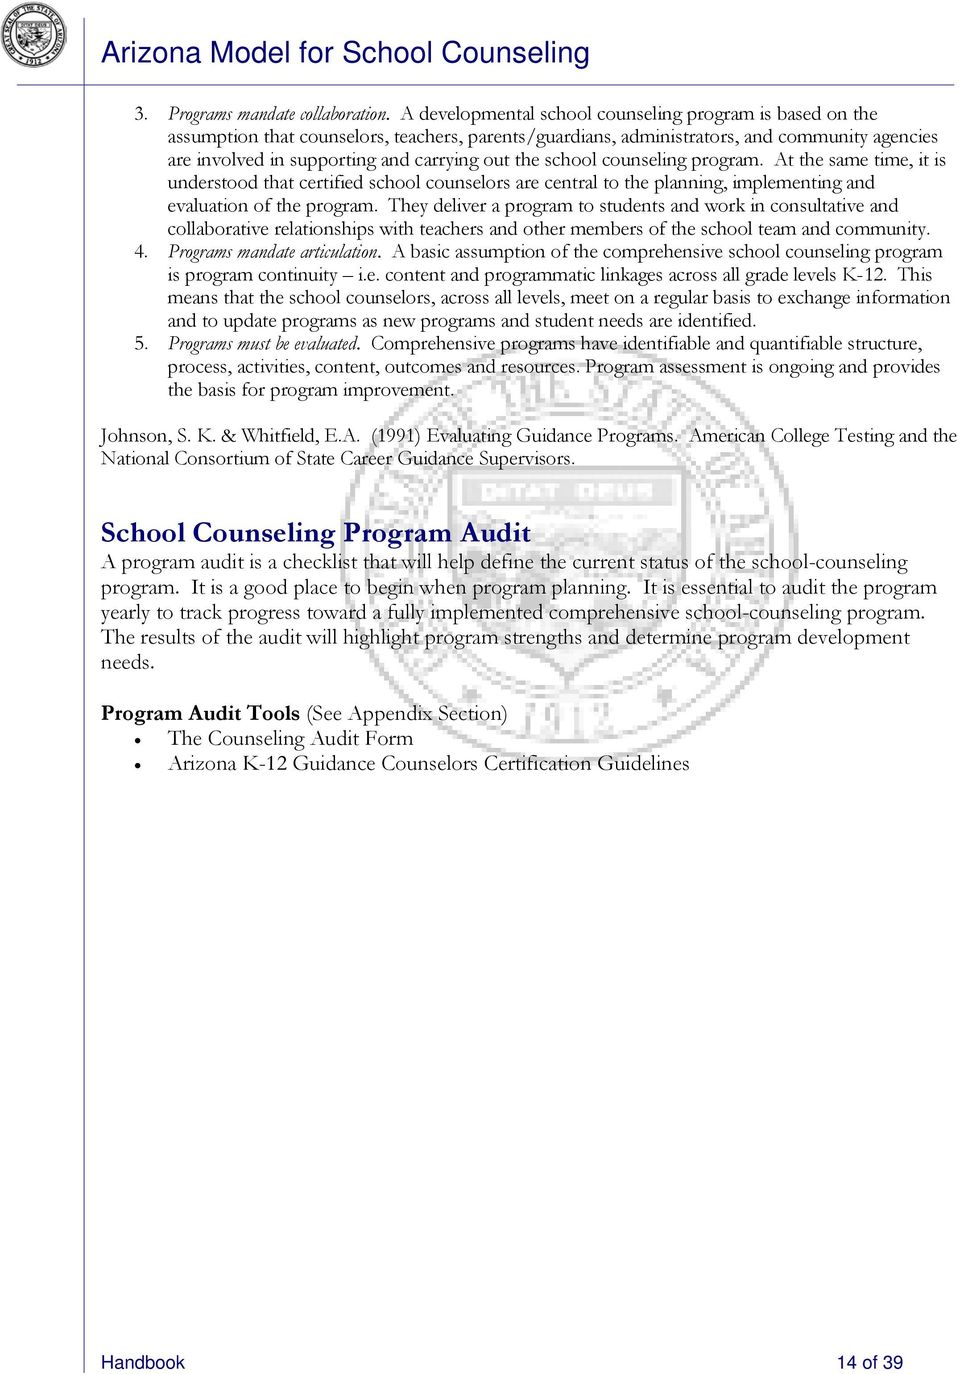 the school counseling program. At the same time, it is understood that certified school counselors are central to the planning, implementing and evaluation of the program.